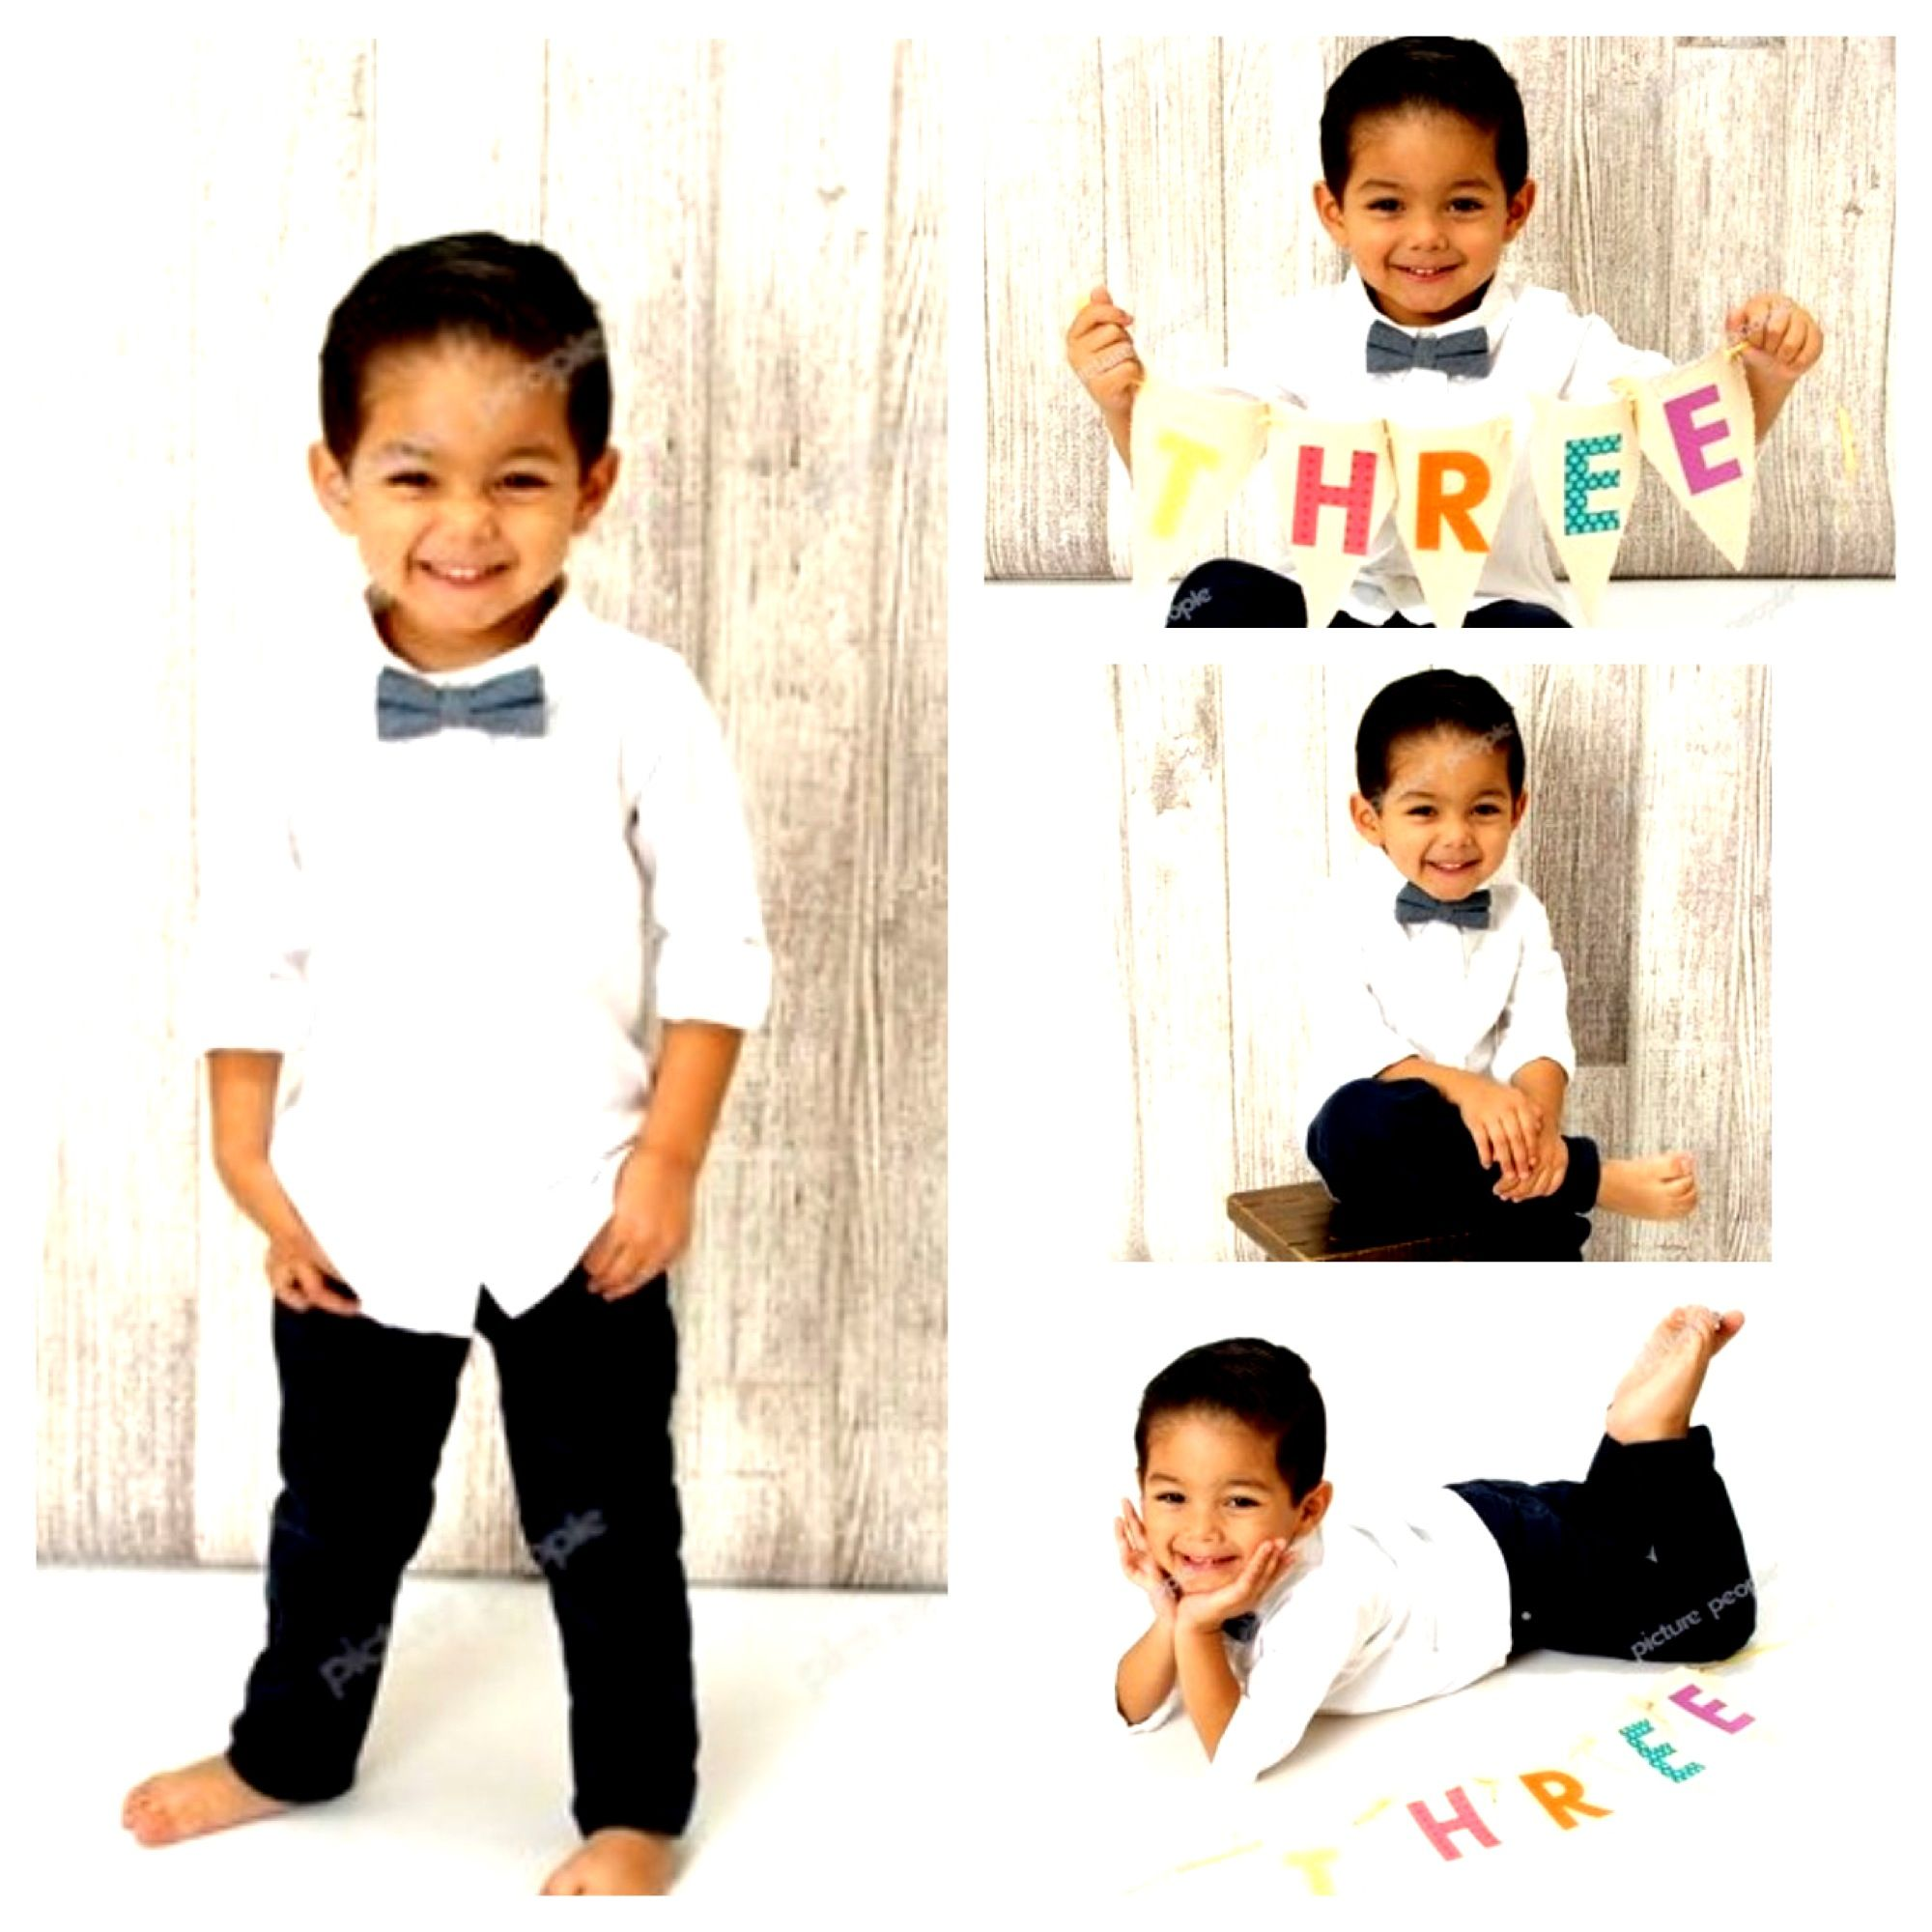 3 Year Old Photo Shoot Cute Outfit And Sign Idea!